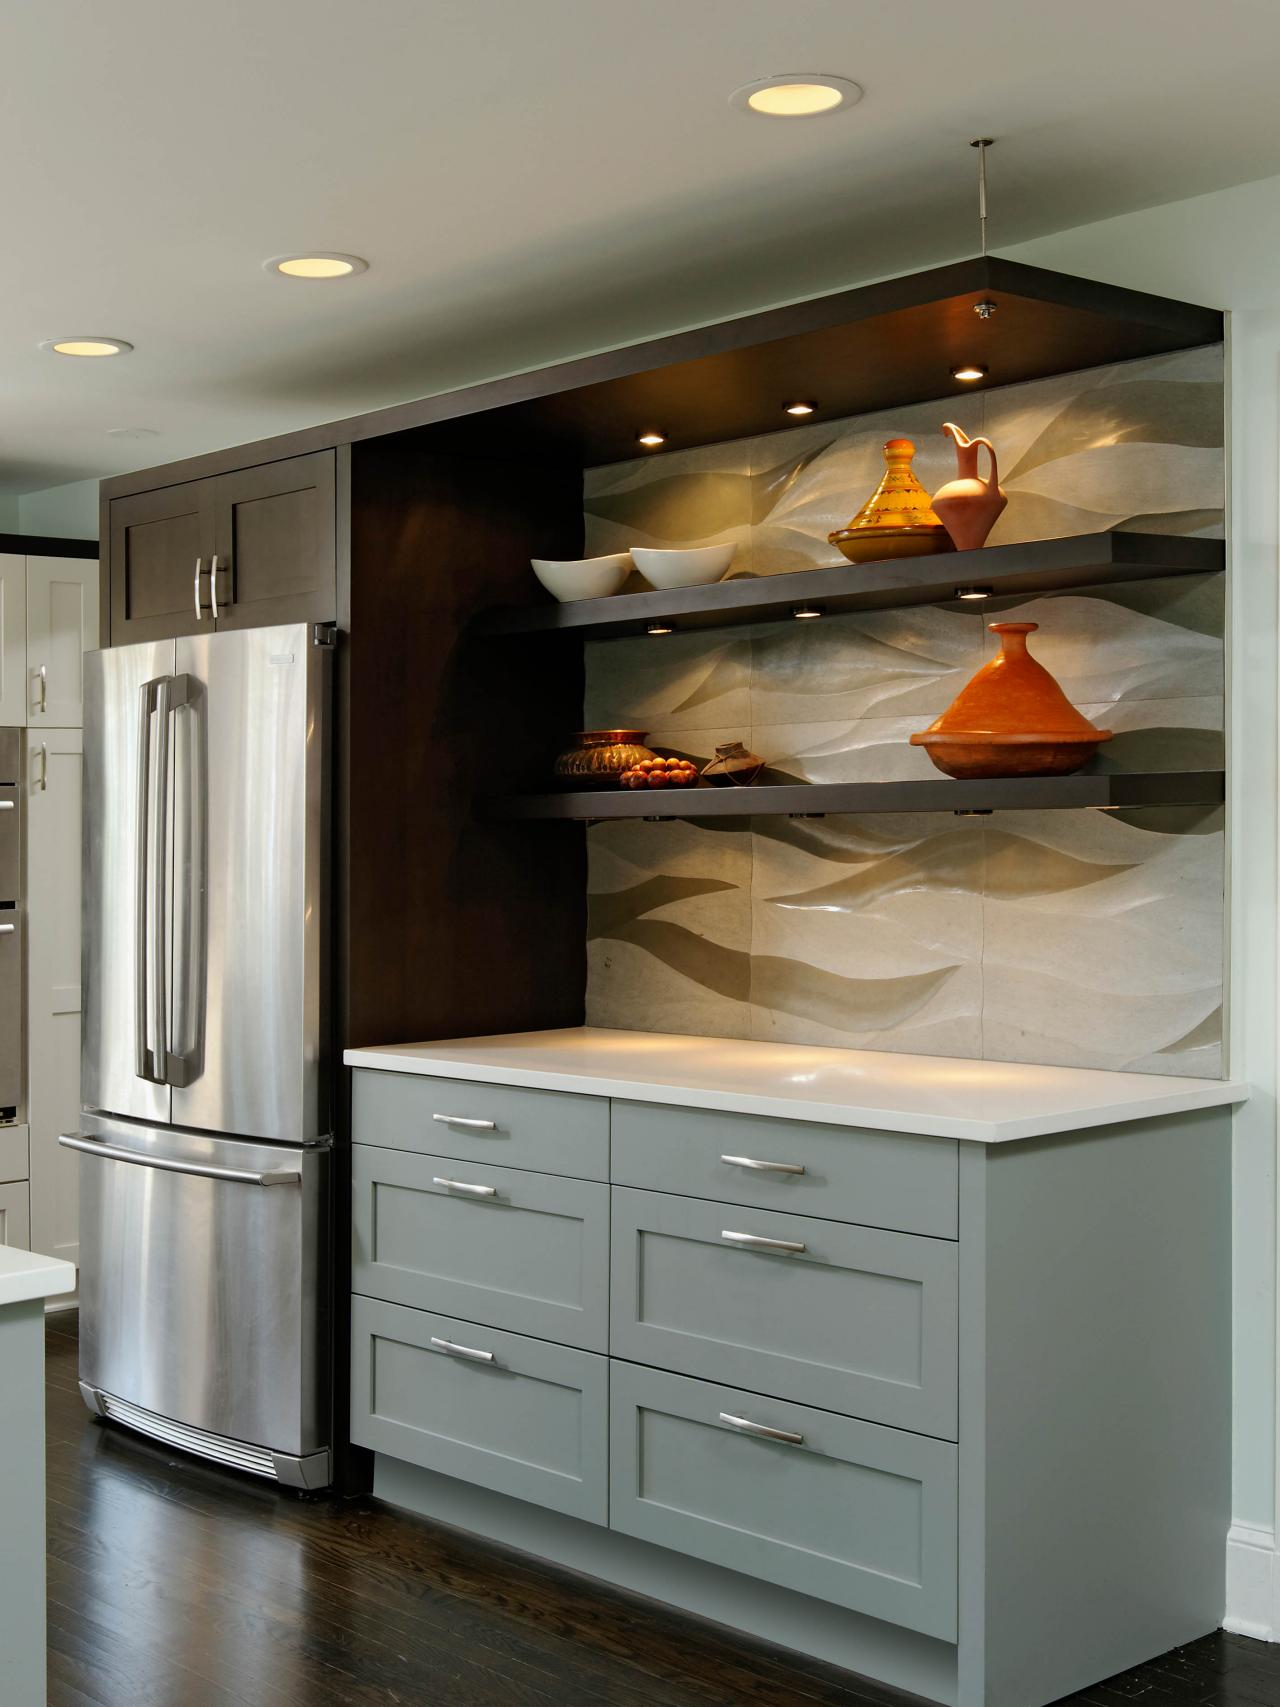 Photos hgtv Floating shelf ideas for kitchen